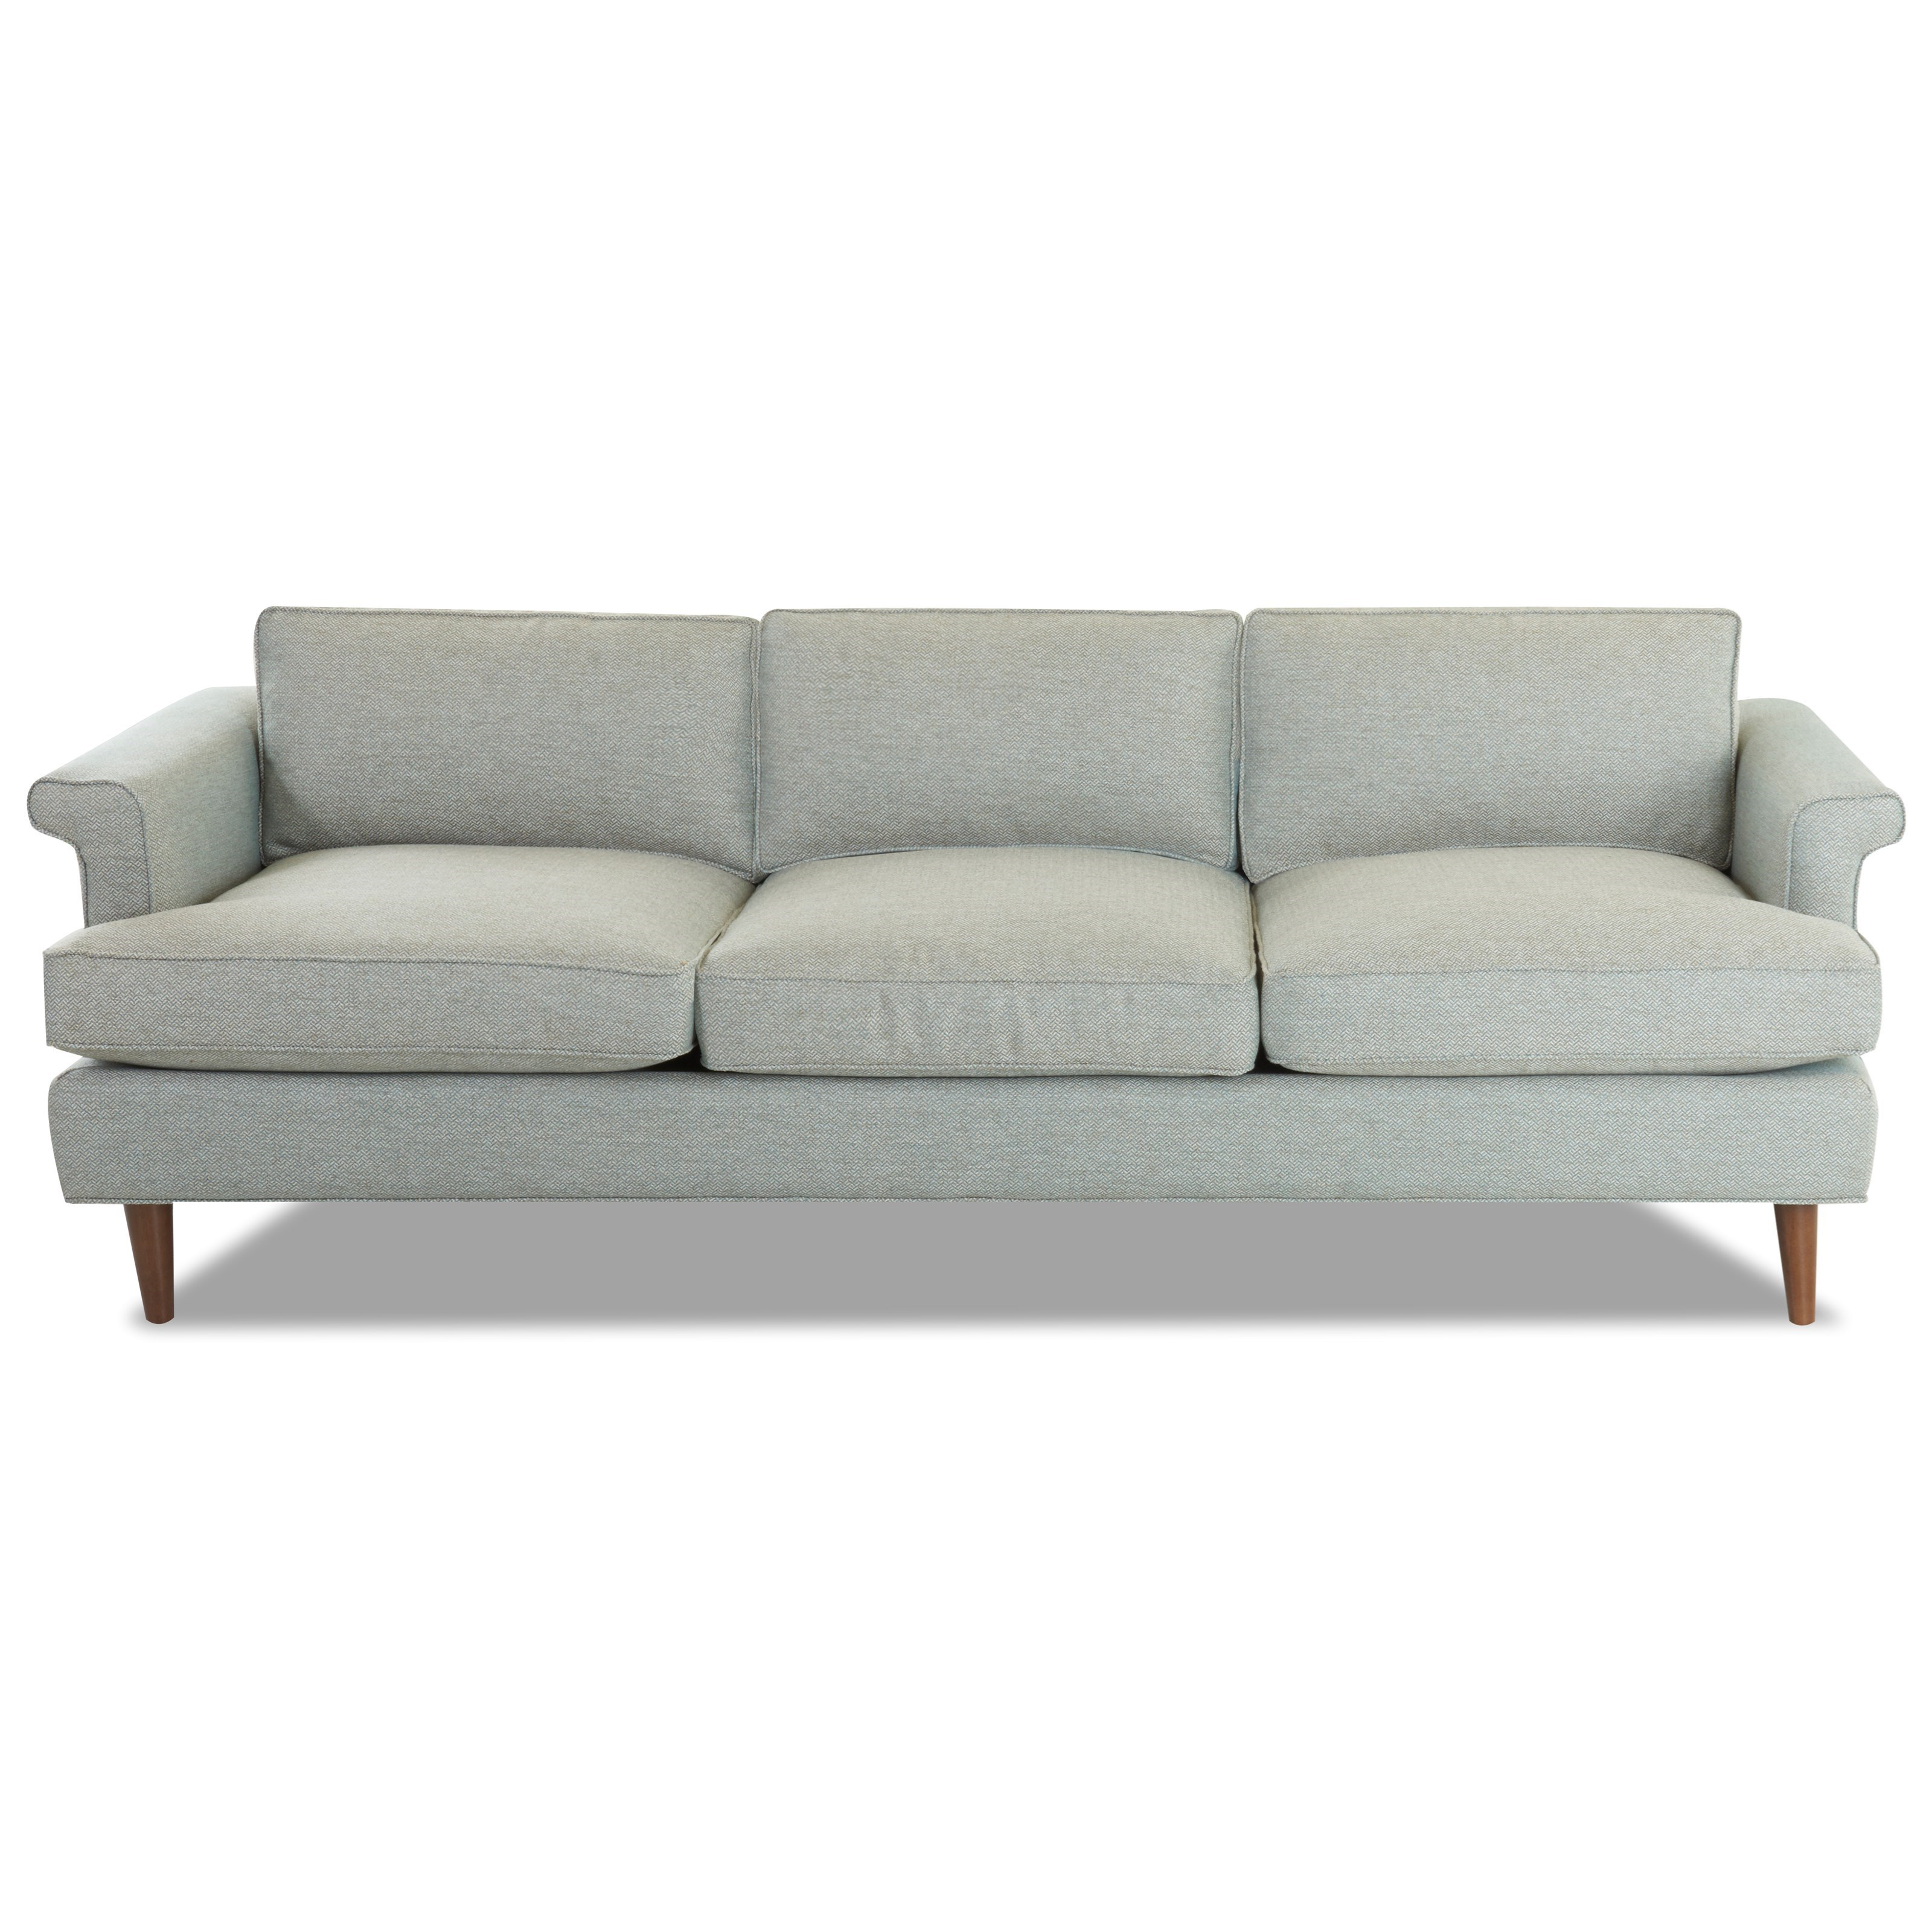 Mid-Century Modern Sofa with Exposed Wood Legs and L-Shaped Arms